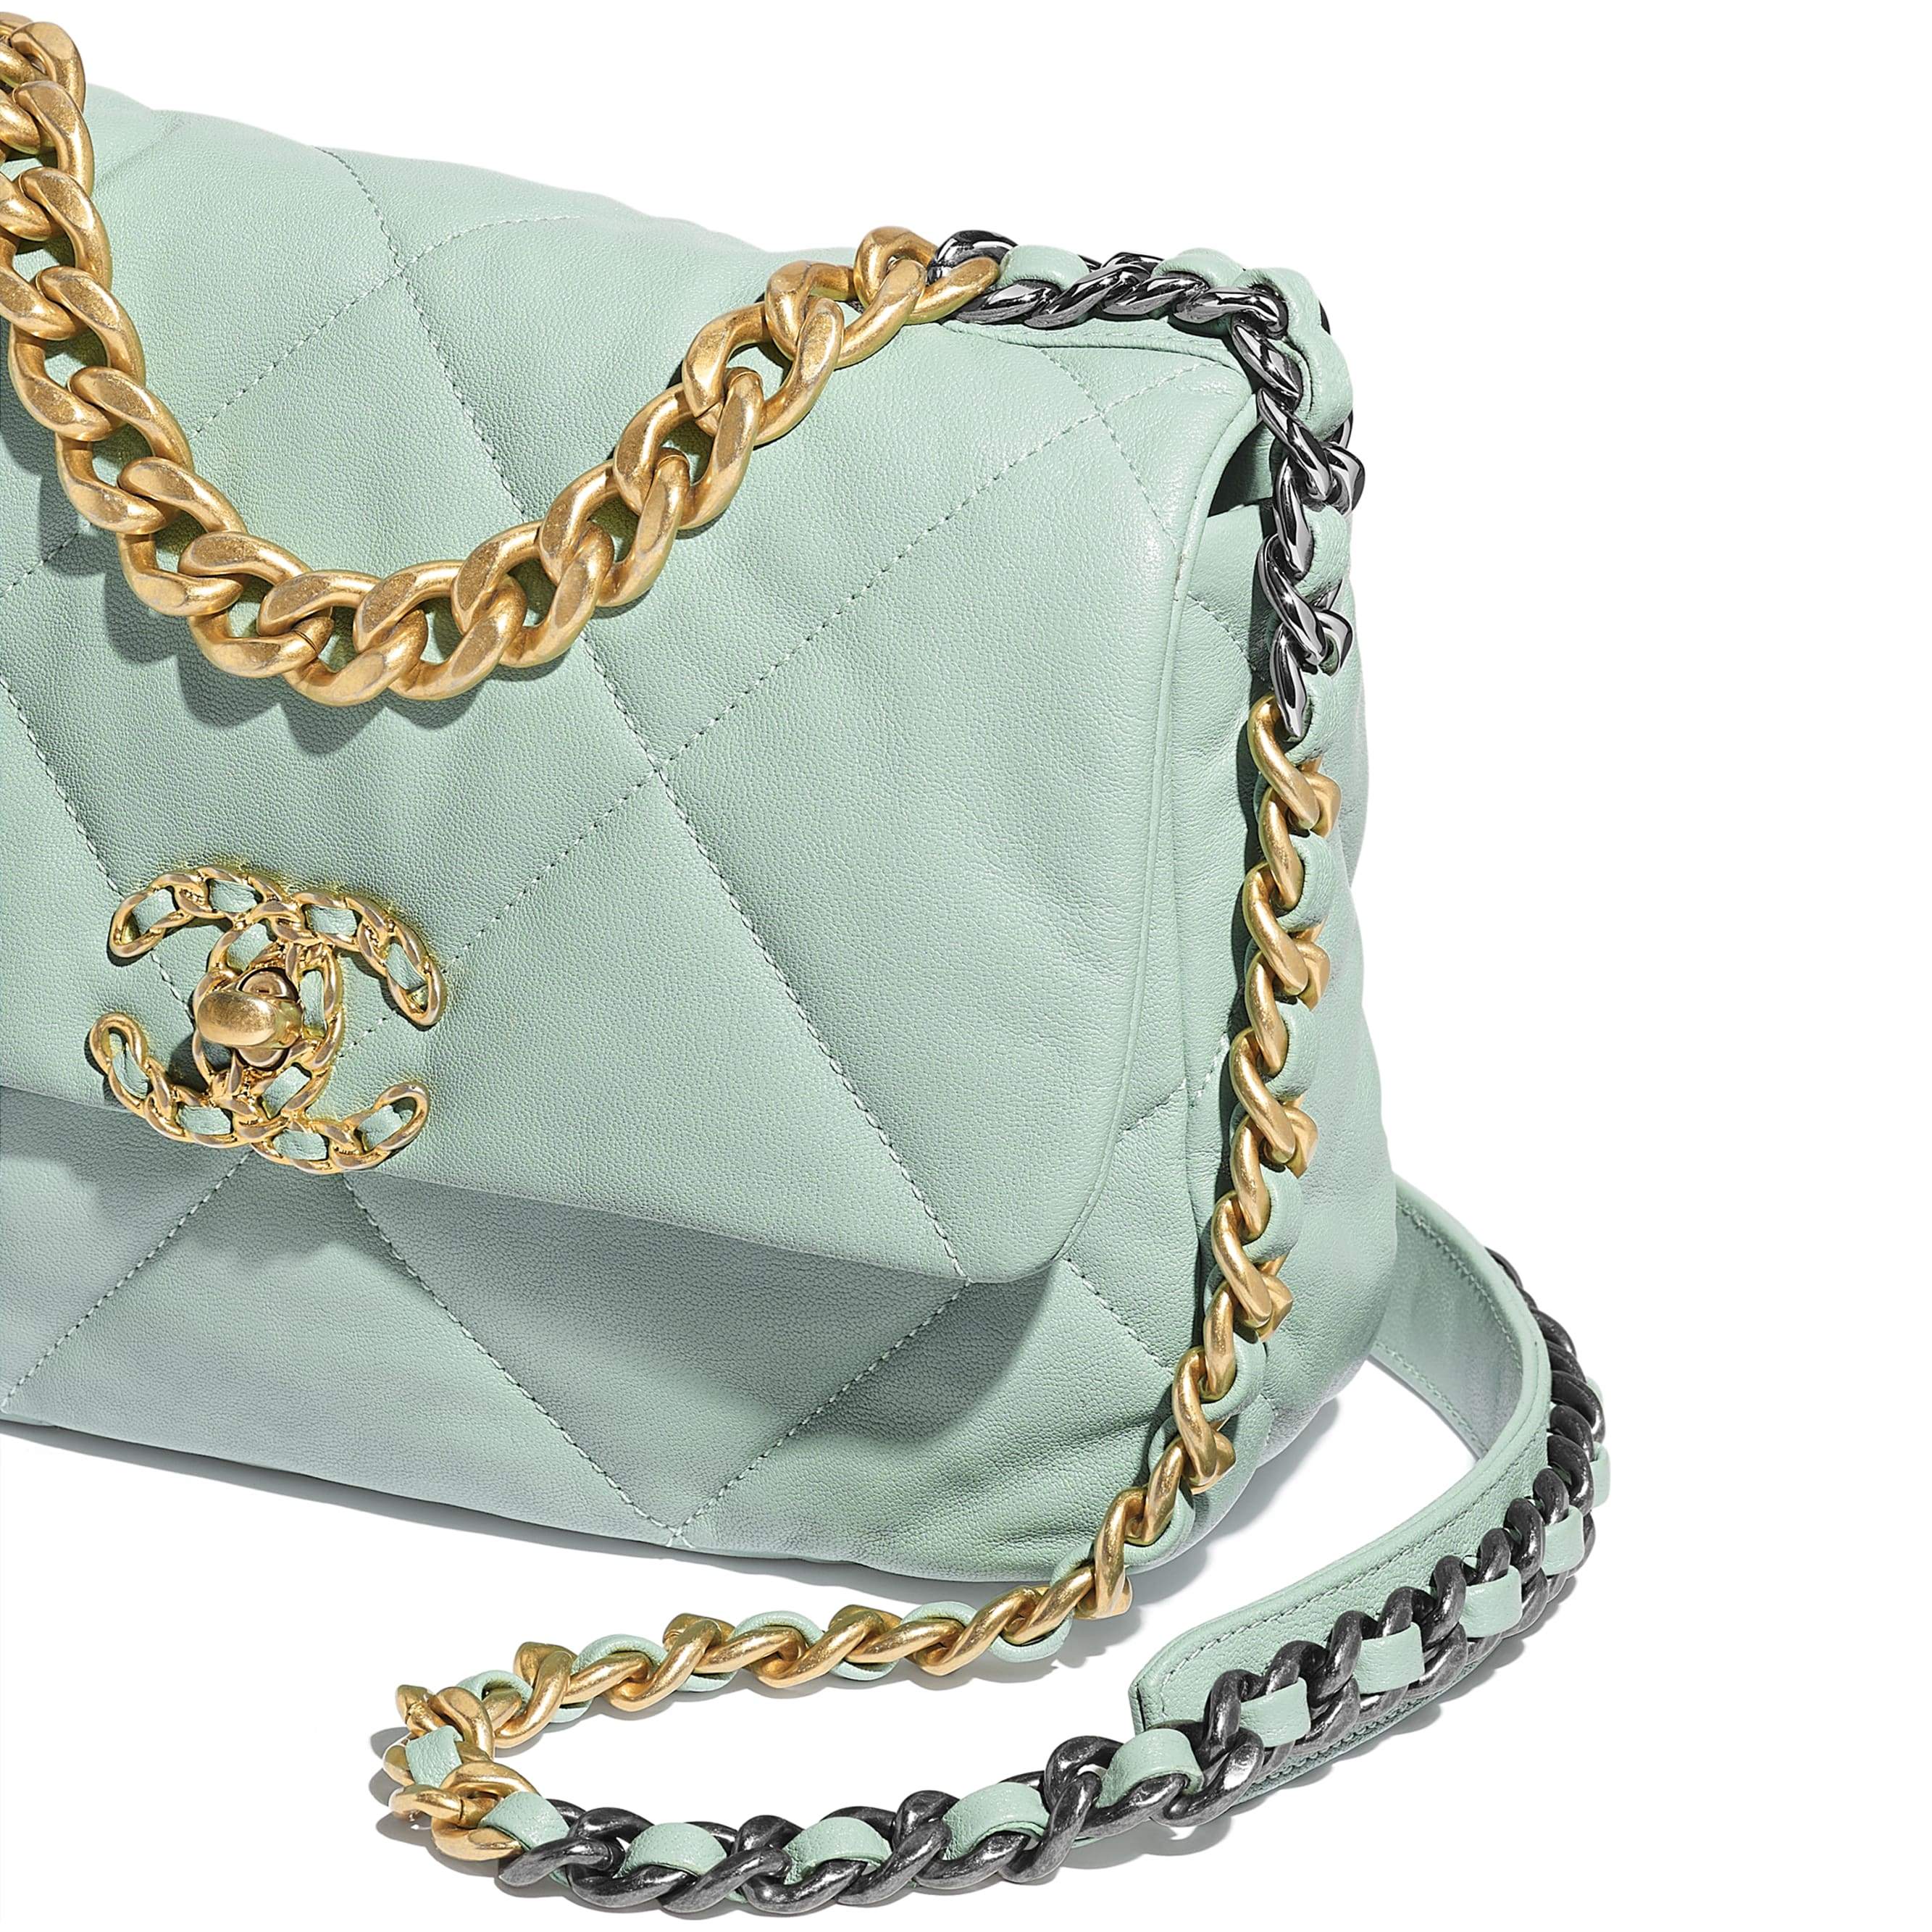 CHANEL 19 Flap Bag - Blue - Lambskin, Gold-Tone, Silver-Tone & Ruthenium-Finish Metal - Extra view - see standard sized version